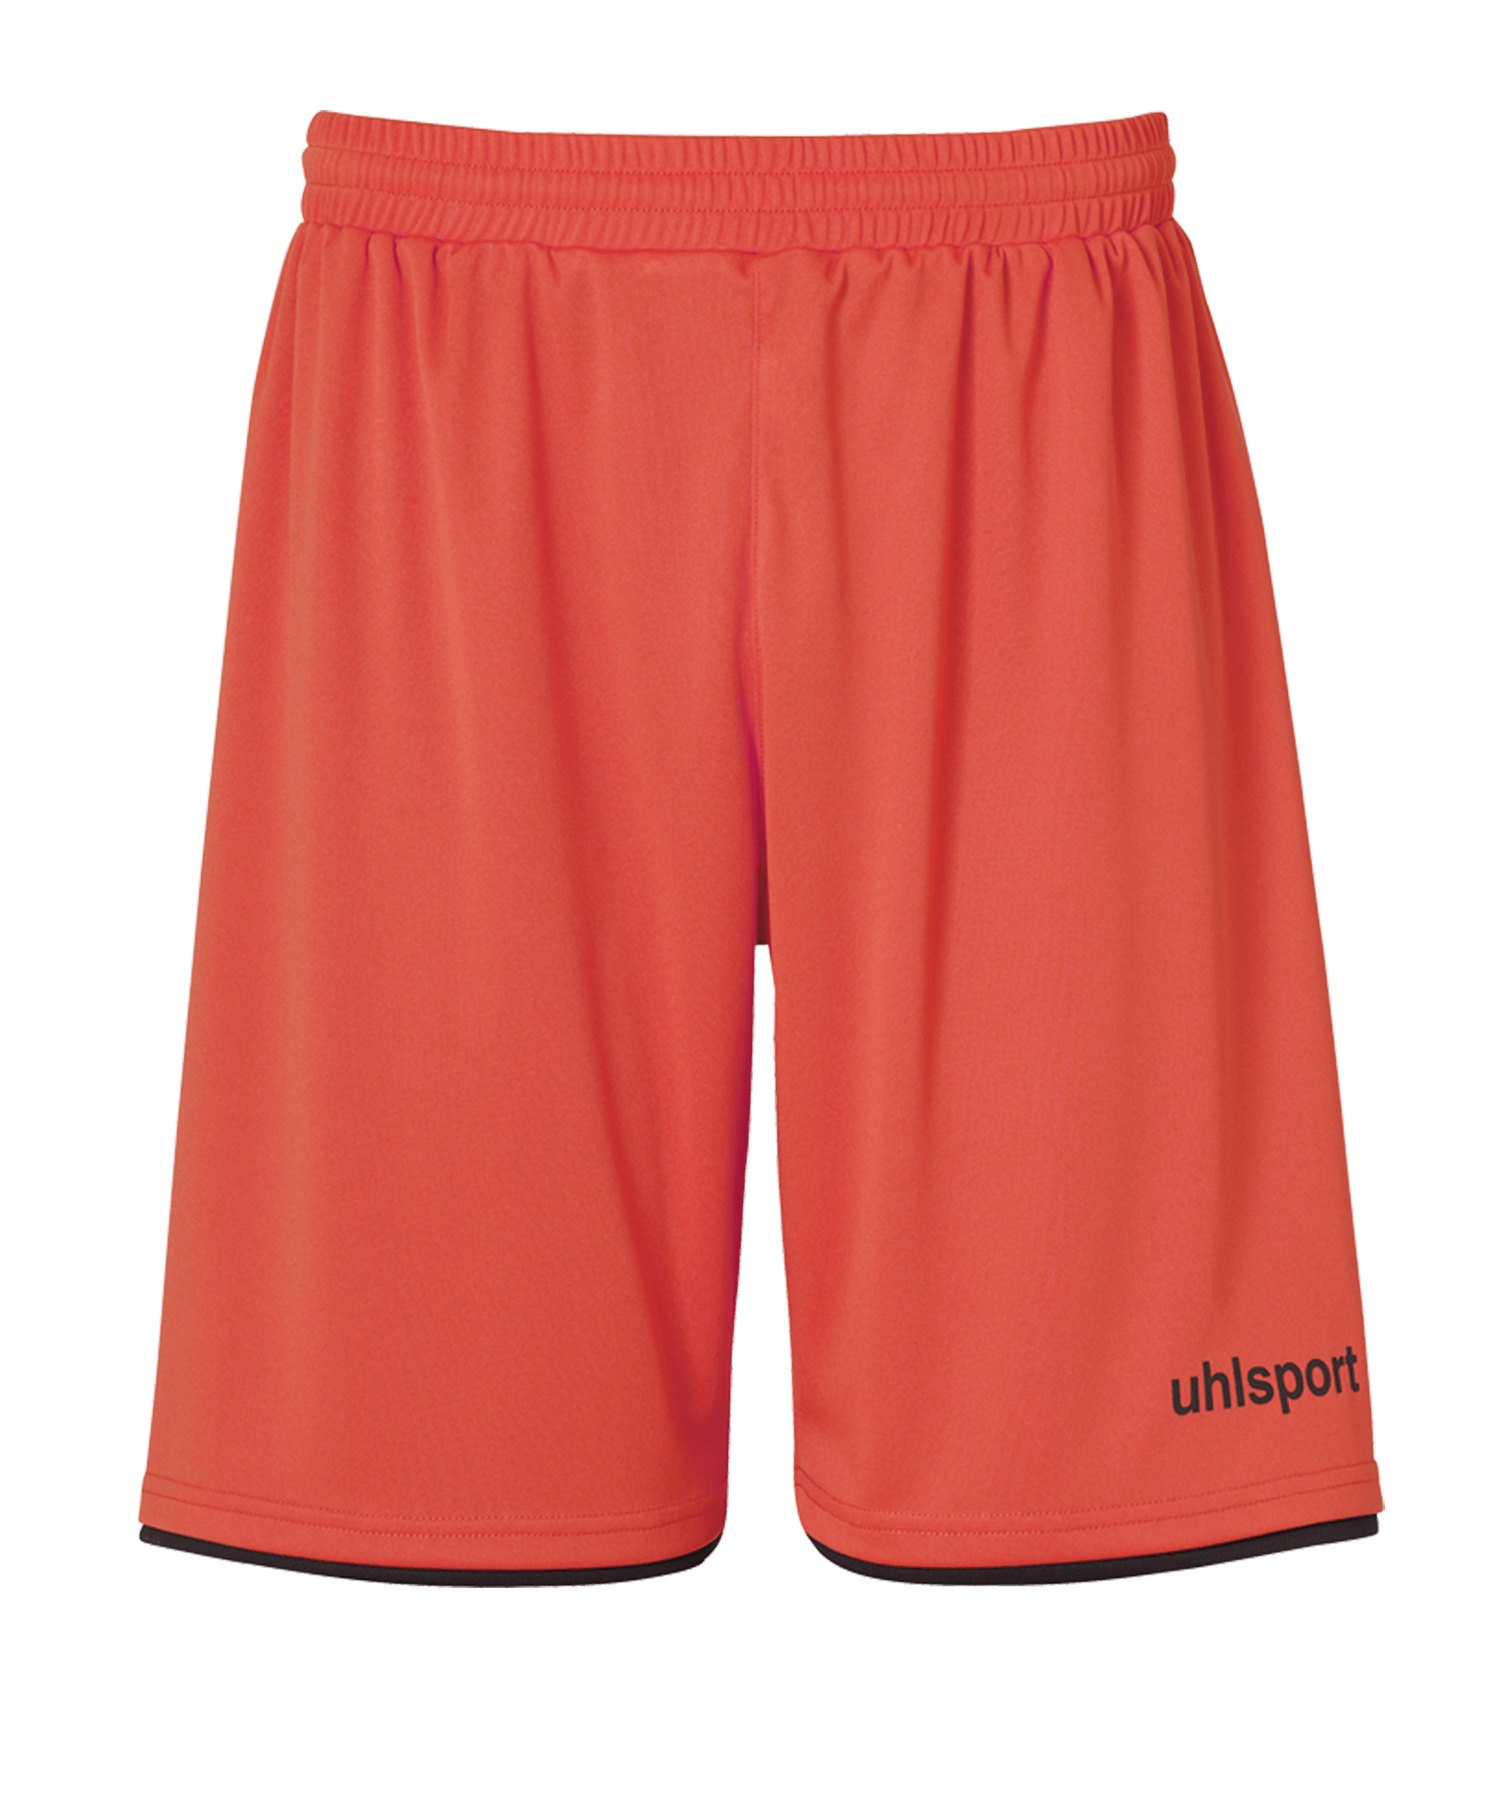 Uhlsport Club Short Kids Orange Schwarz F12 - orange